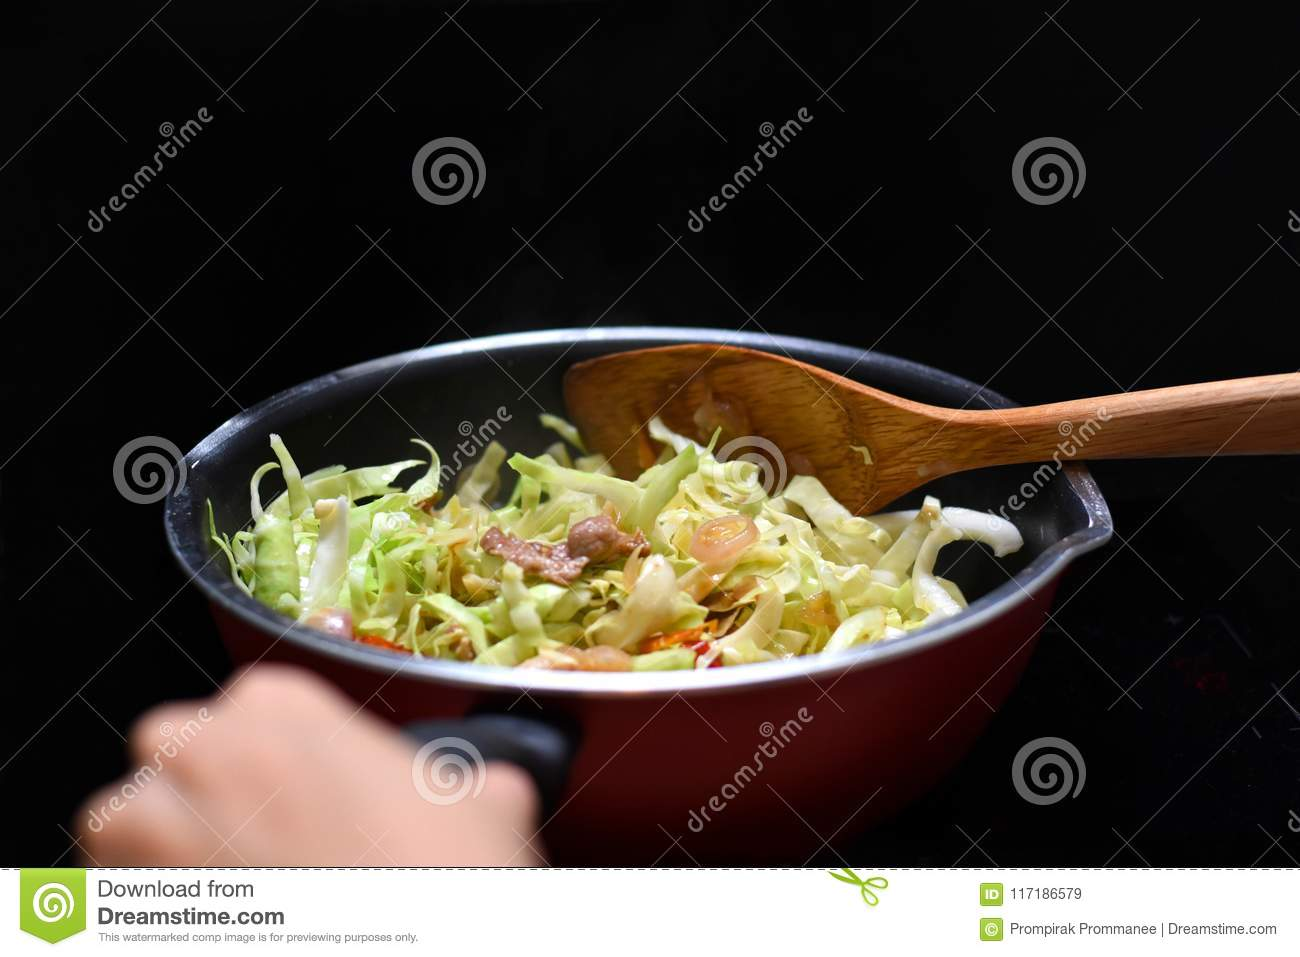 Cuisine Induction Stir Fried Mixed Vegetable In Teflon Pan Heat Source By Induction